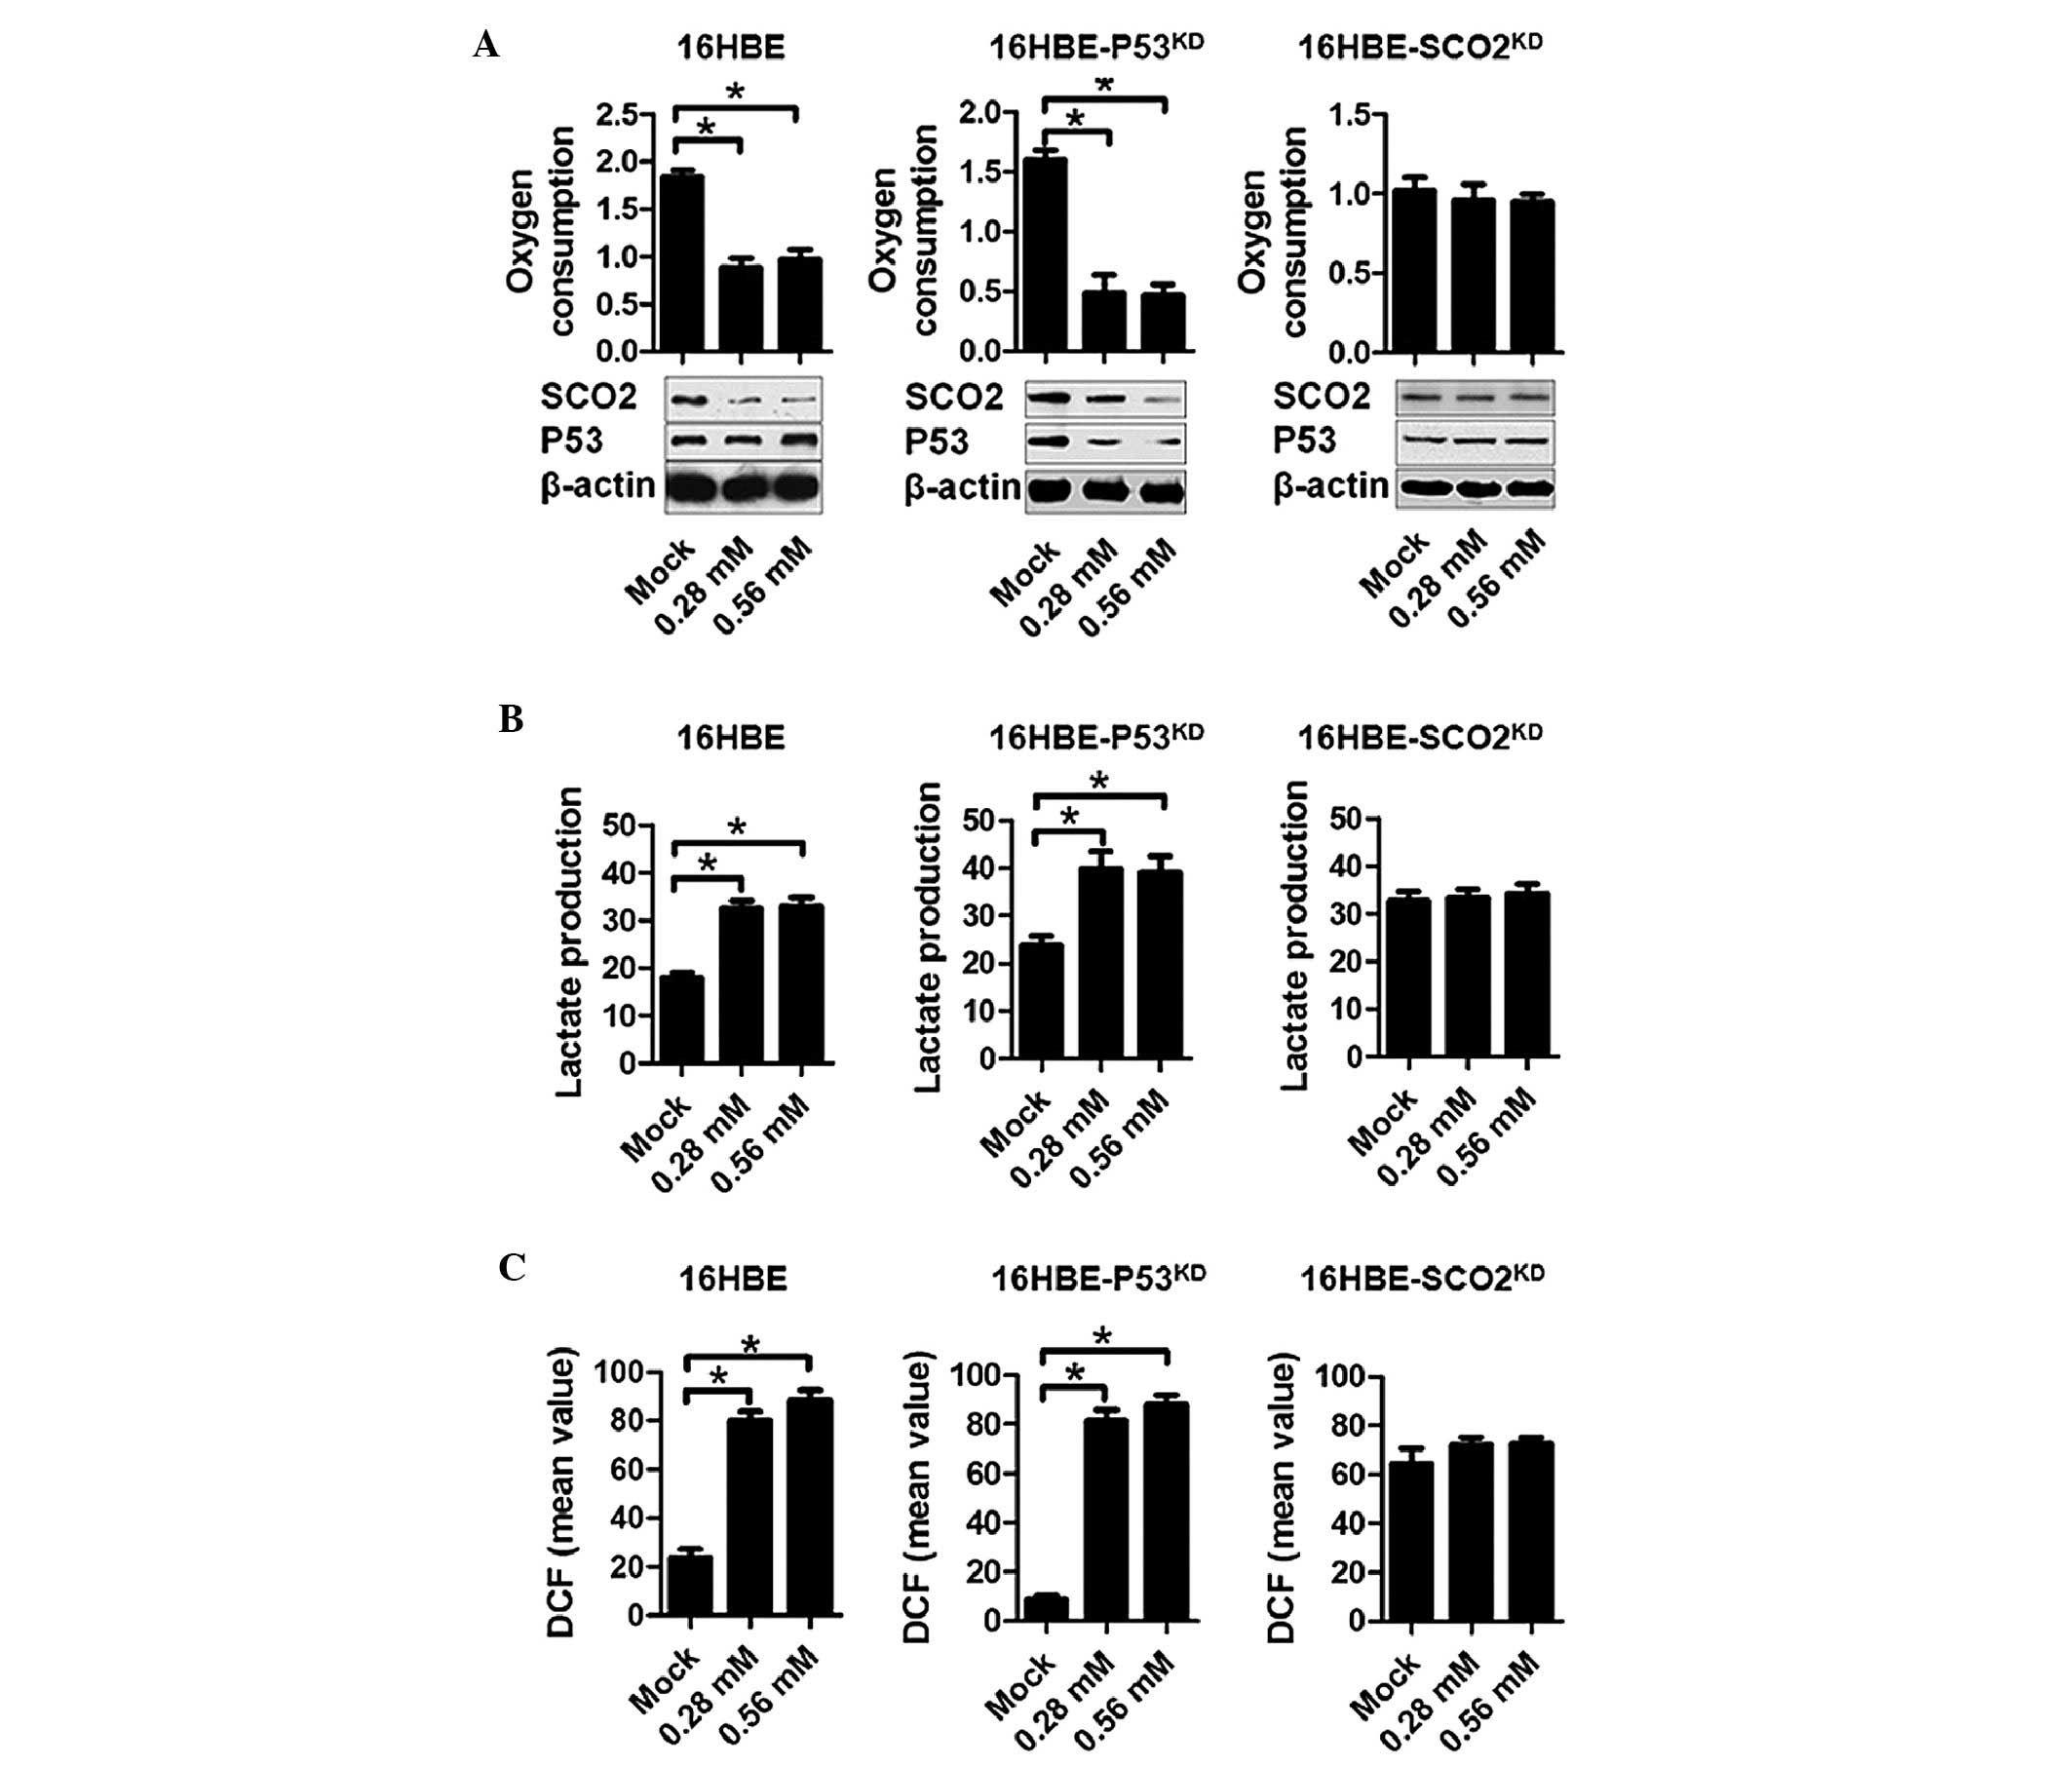 Emulsified Isoflurane Treatment Inhibits The Cell Cycle And Respiration Of Human Bronchial